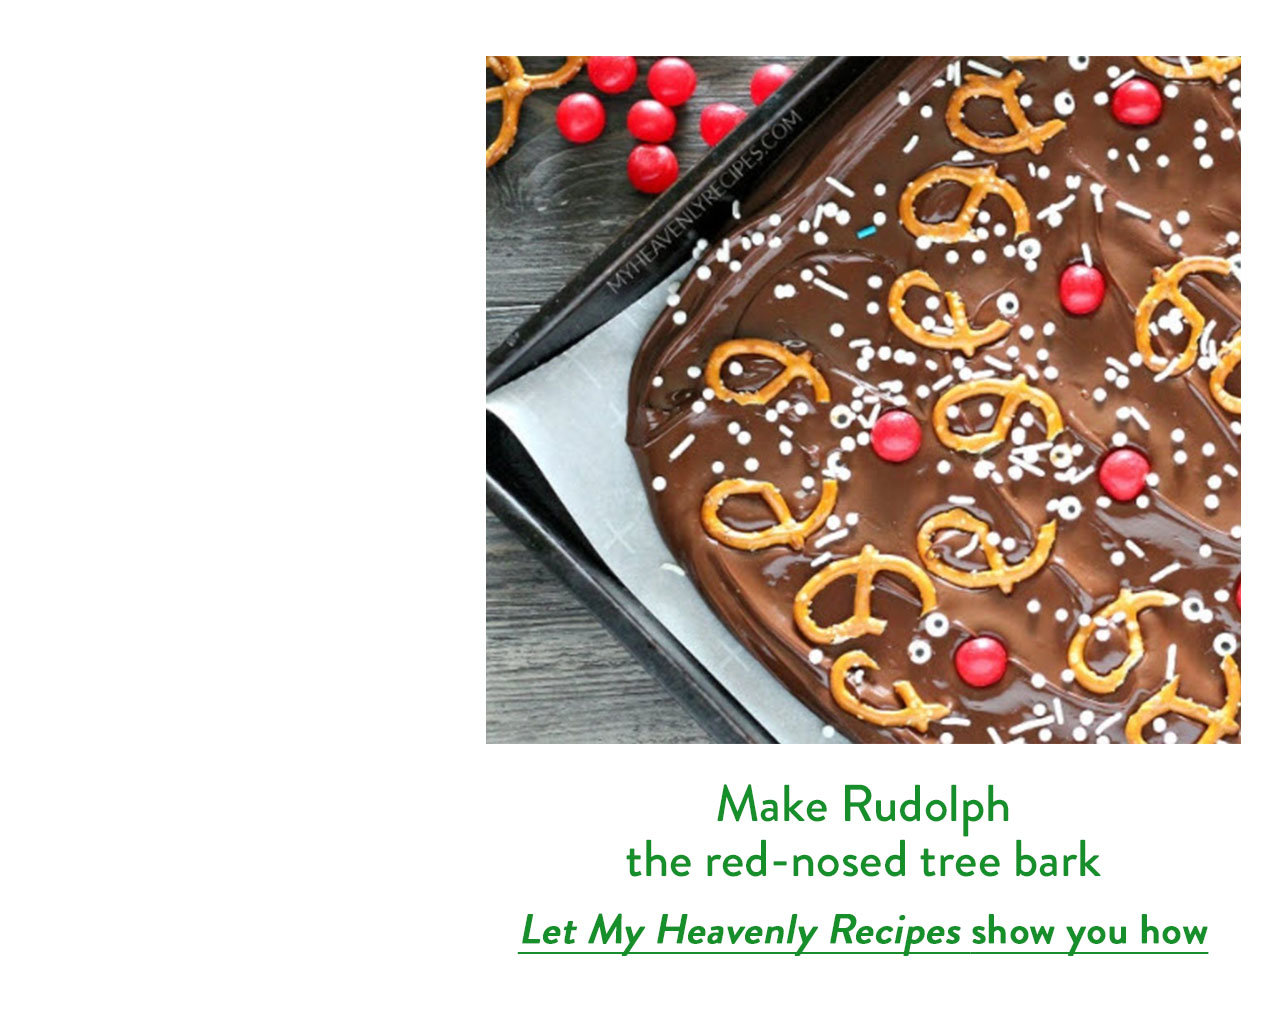 Make Rudolph the red-nosed tree bark